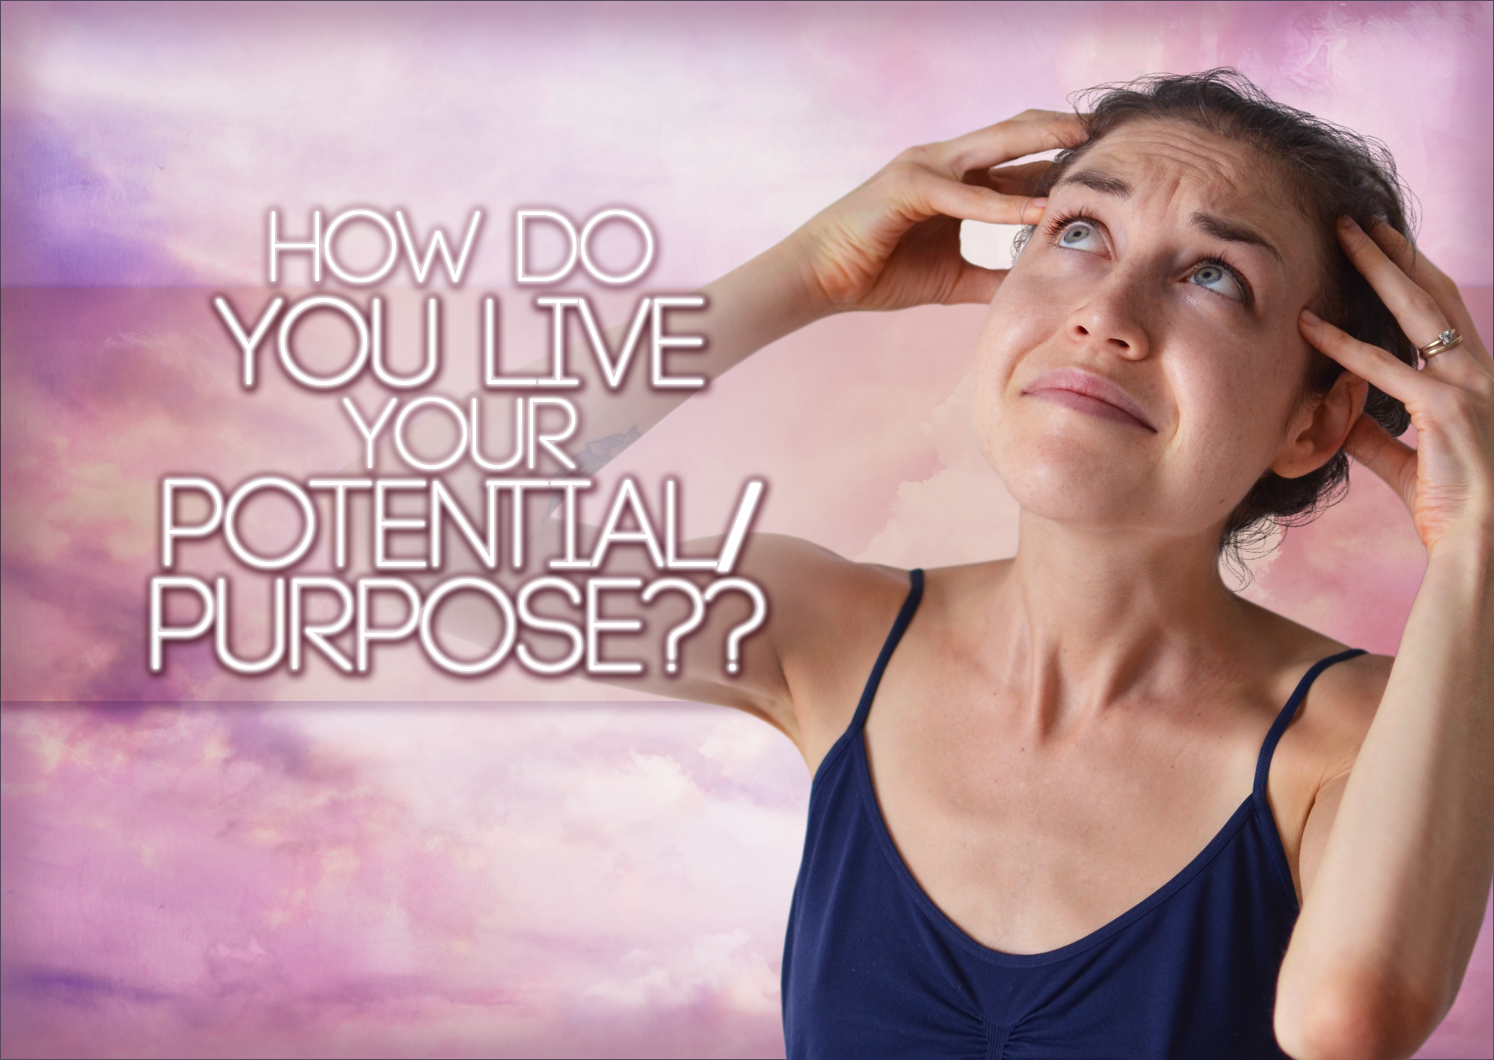 How To Live Your Potential/Purpose: